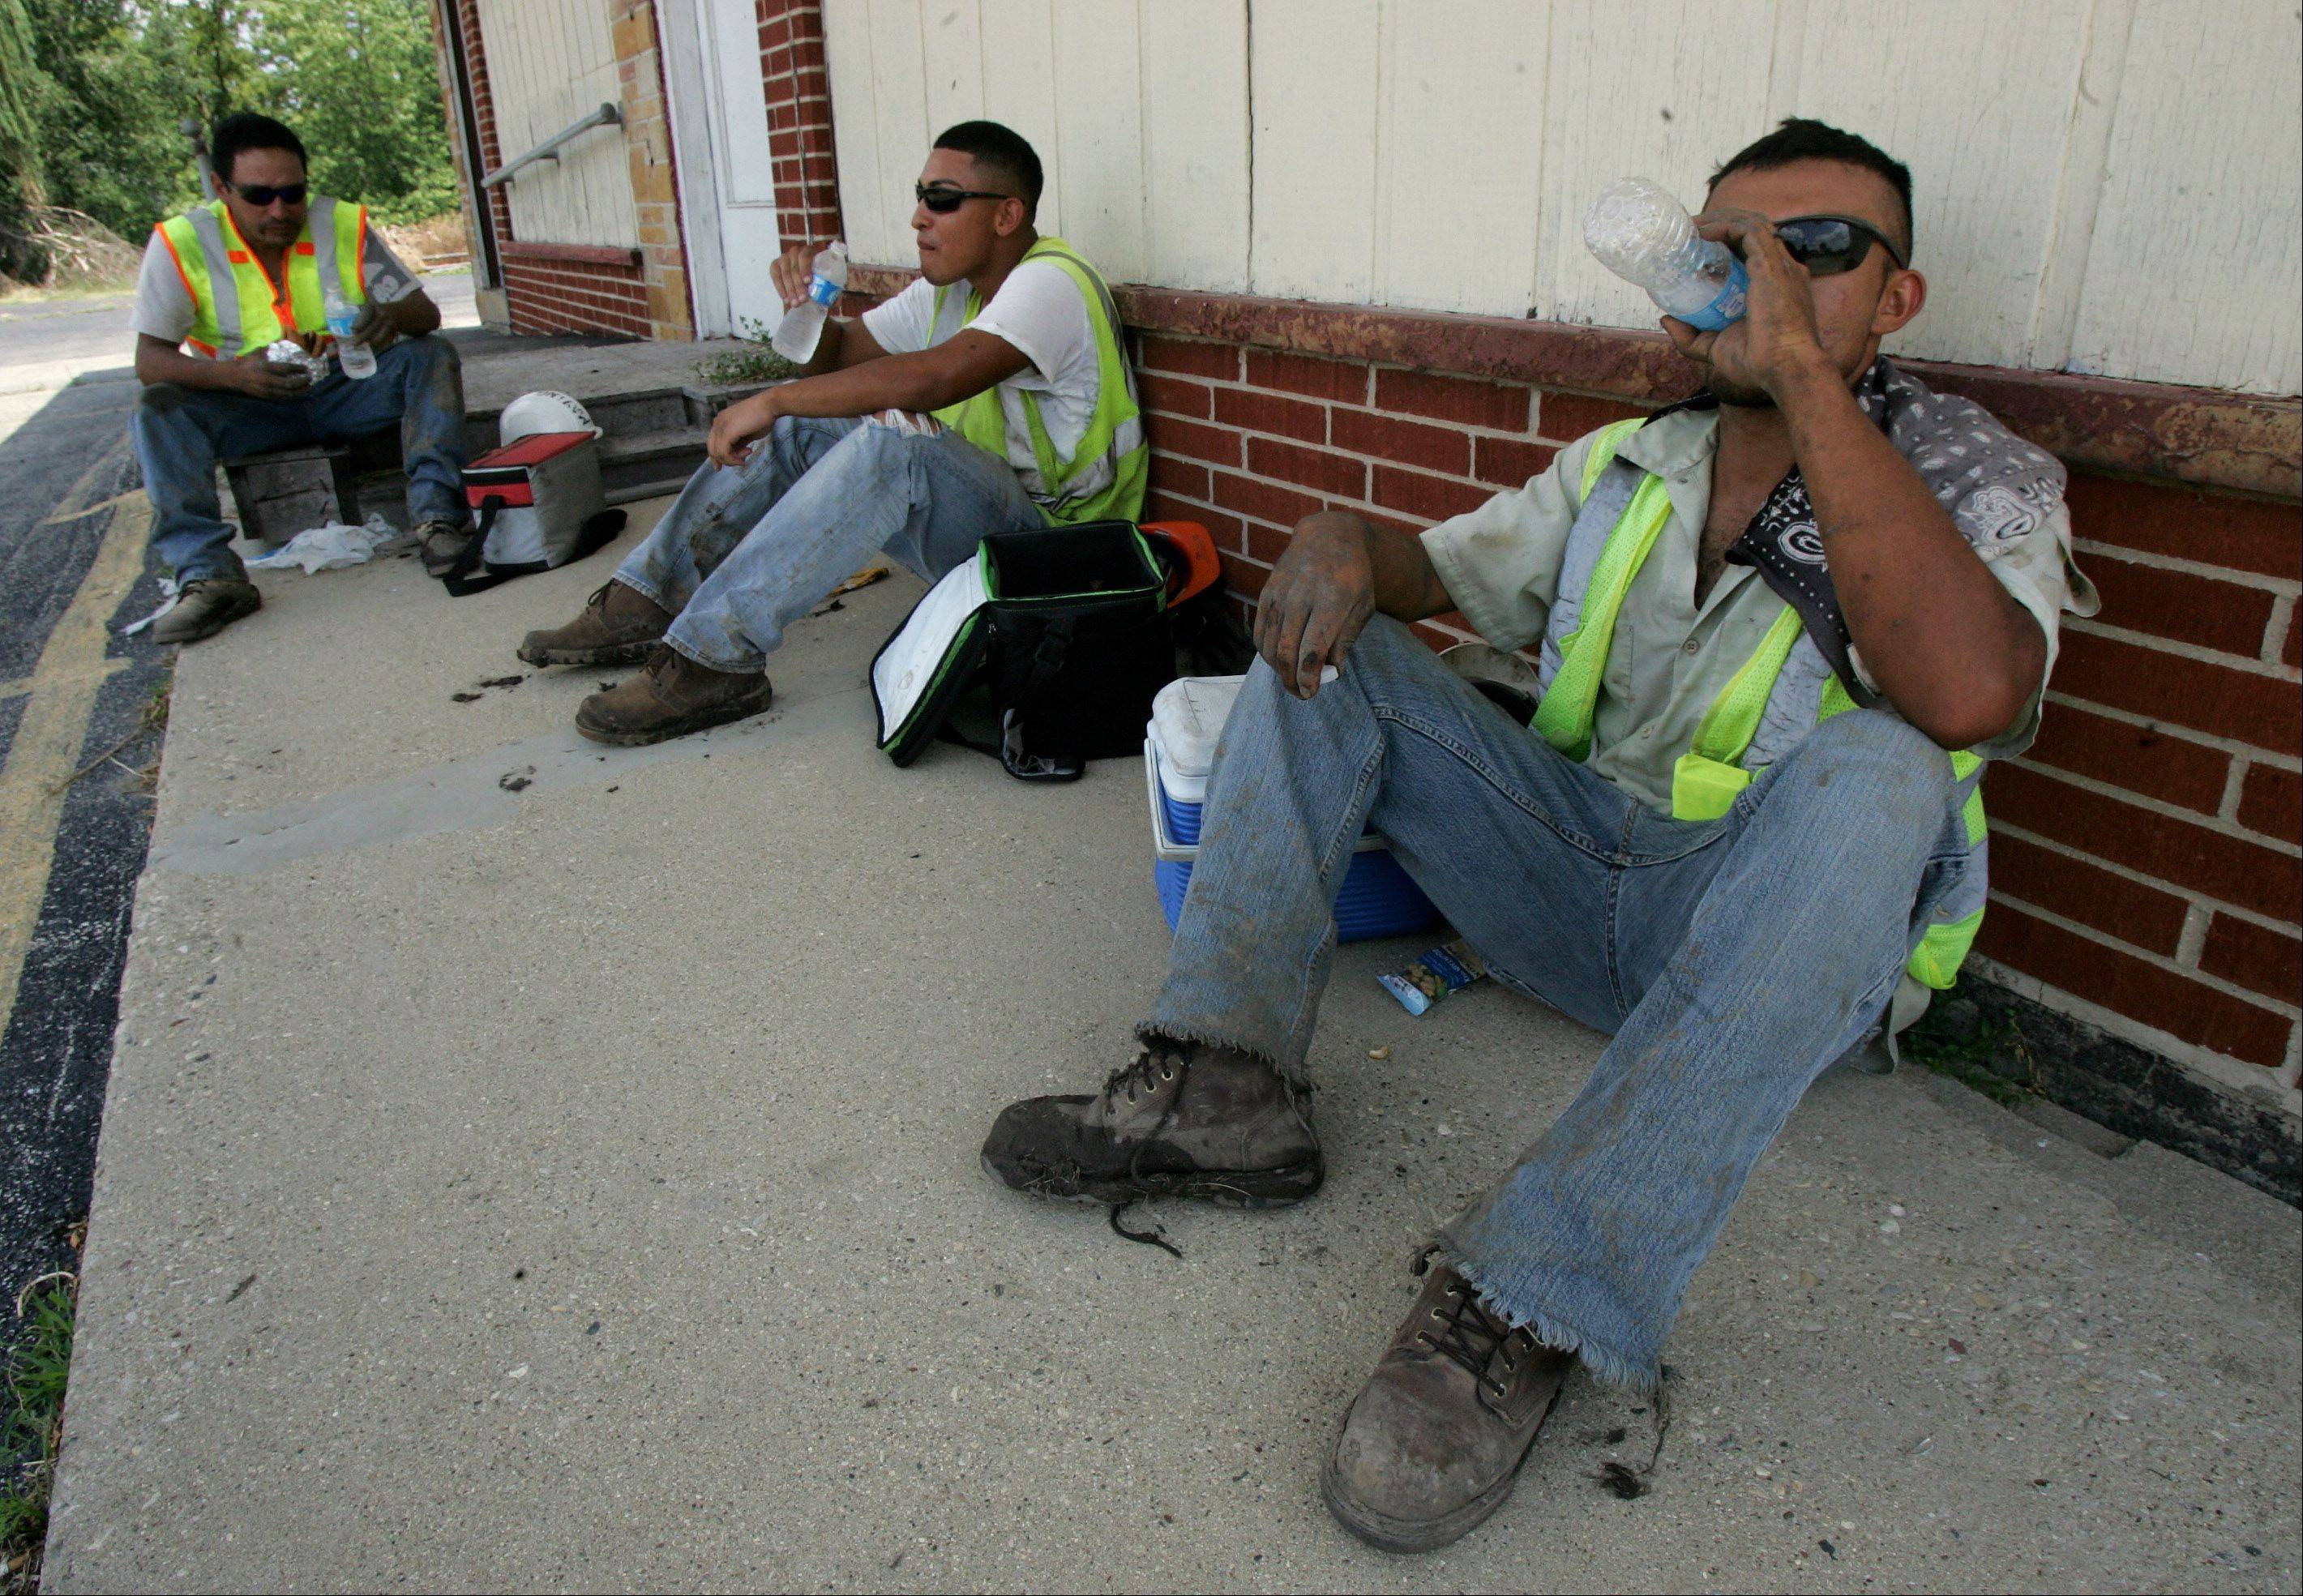 Laborers Diego Martinez, right, Margatio Jimenez, and Luis Salas, of Winters Landscaping, rest in the shade after planting trees along Rollins Road in Round Lake Beach Tuesday.